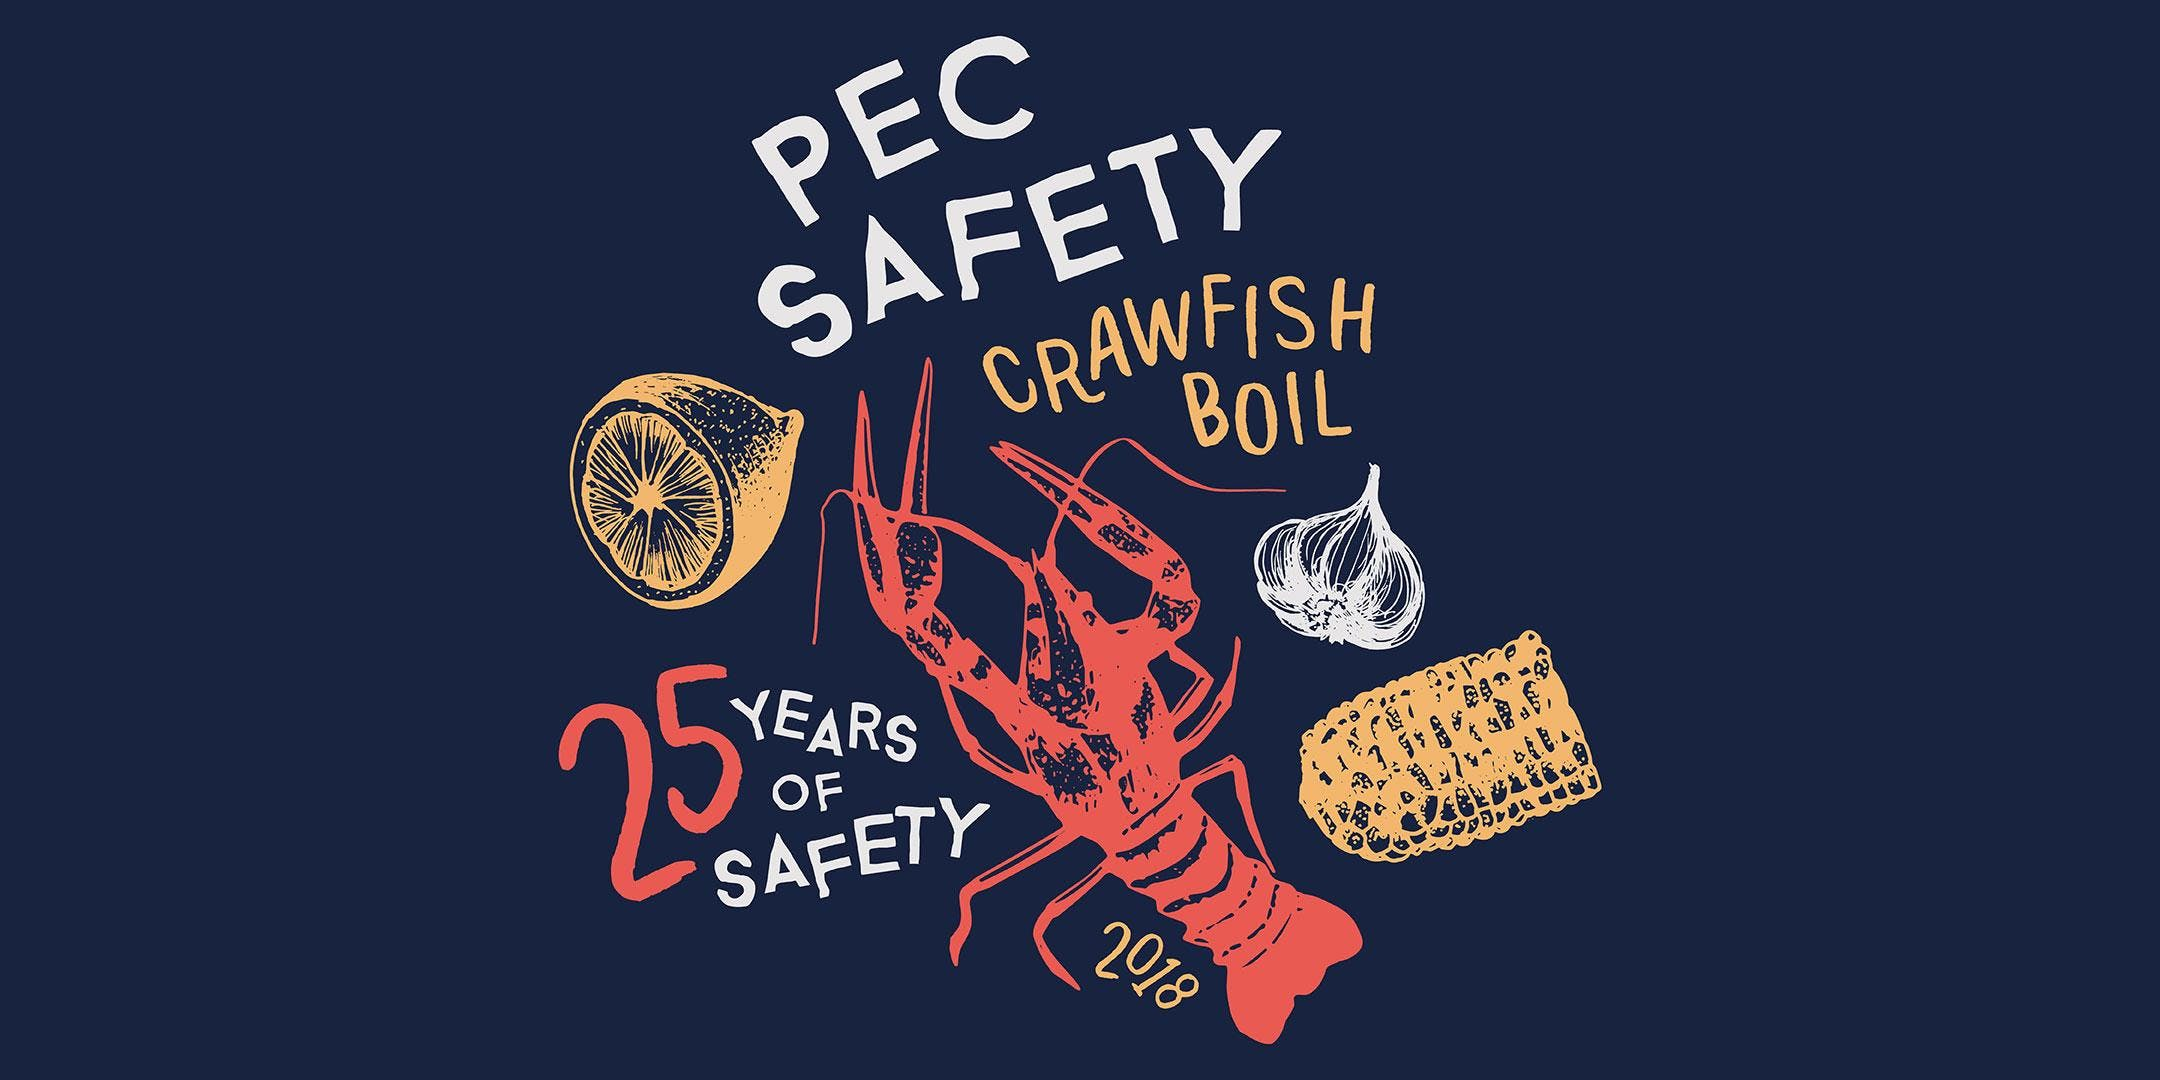 T-shirt Order Form - PEC Safety 11th Annual C